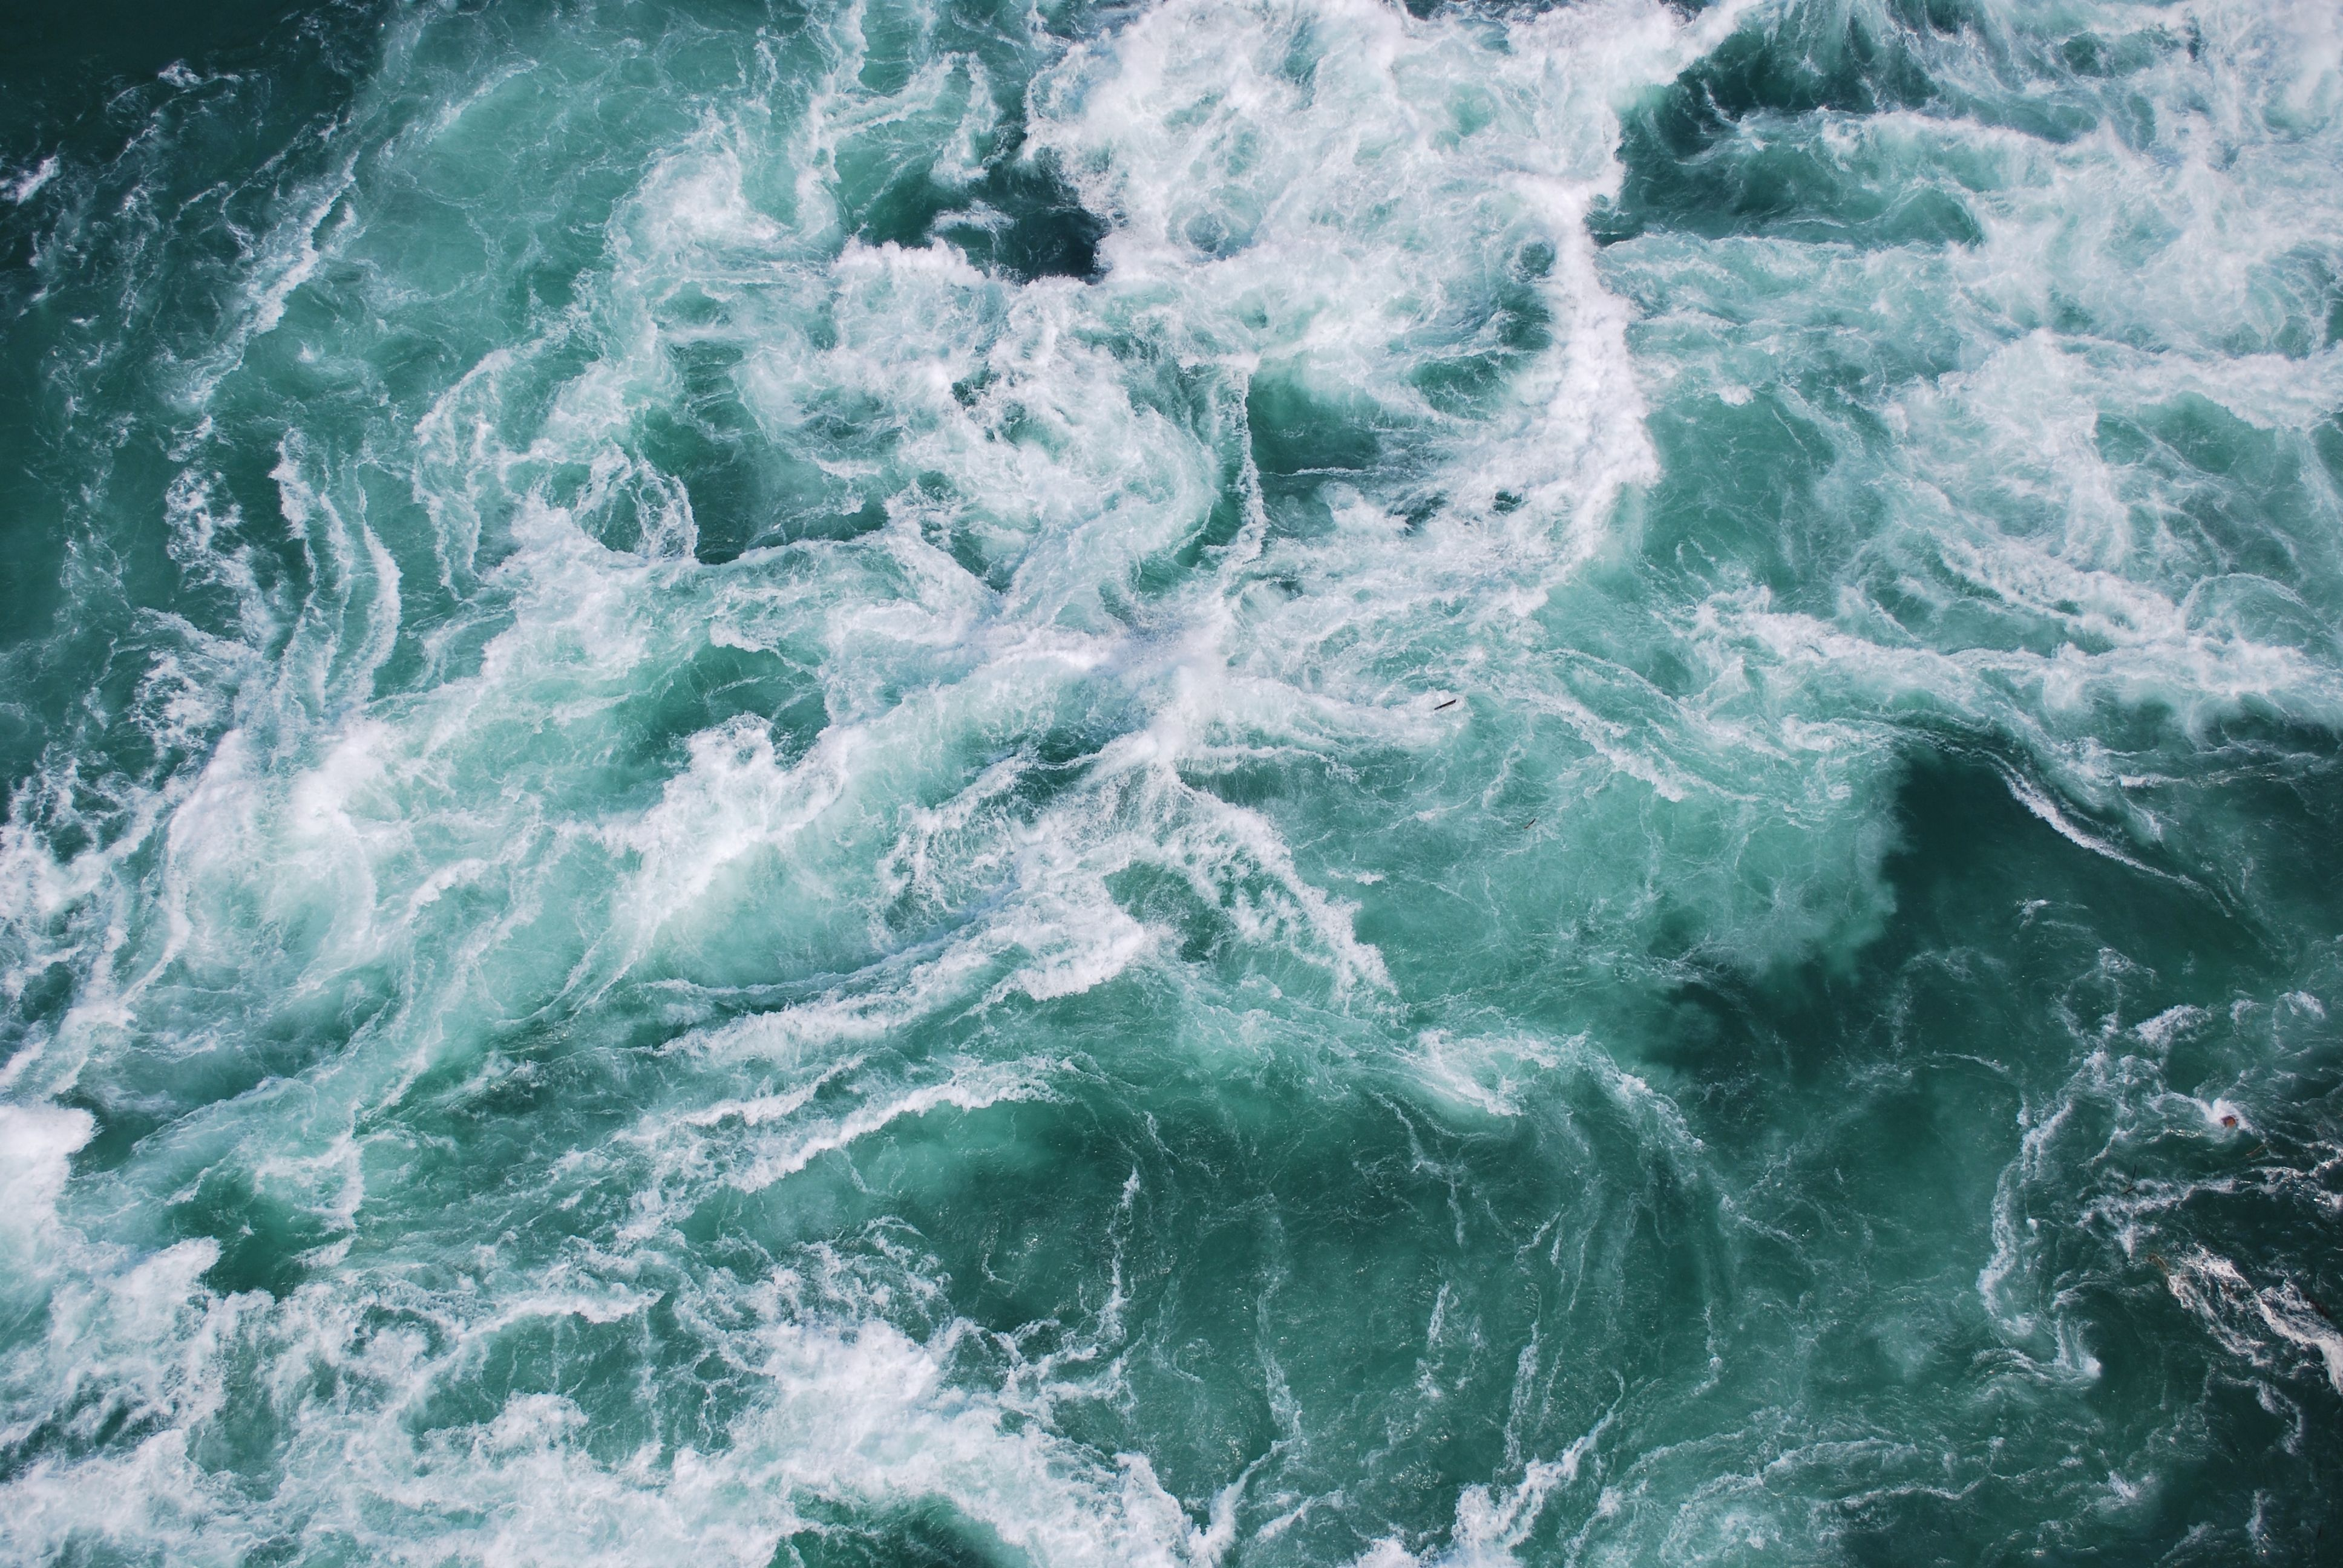 Water Backgrounds Tumblr Wallpaper Cave